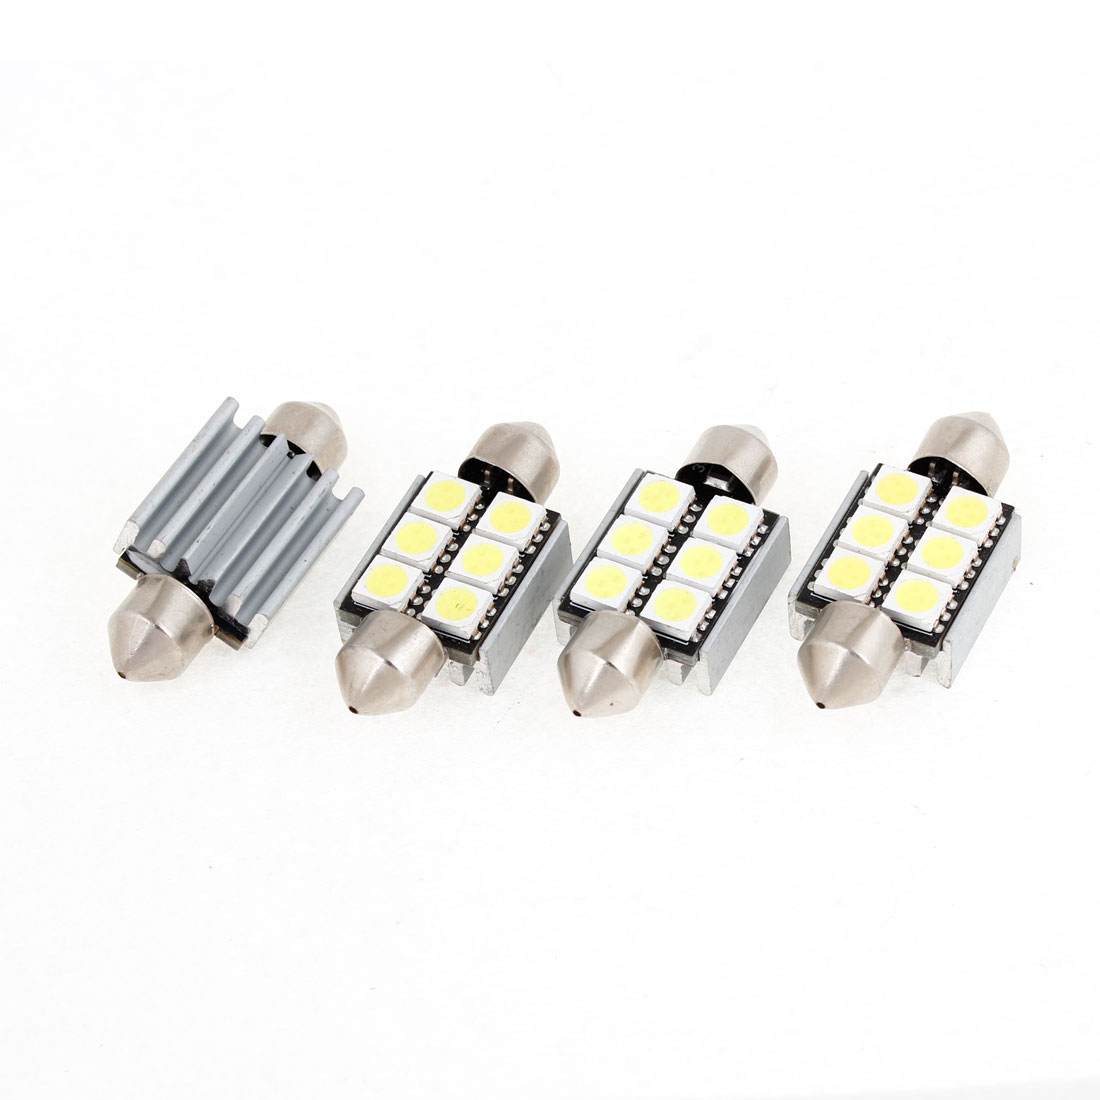 4PCS Car 5050 SMD White 6 LED Canbus No Error Festoon Light 39mm w Heatsink internal